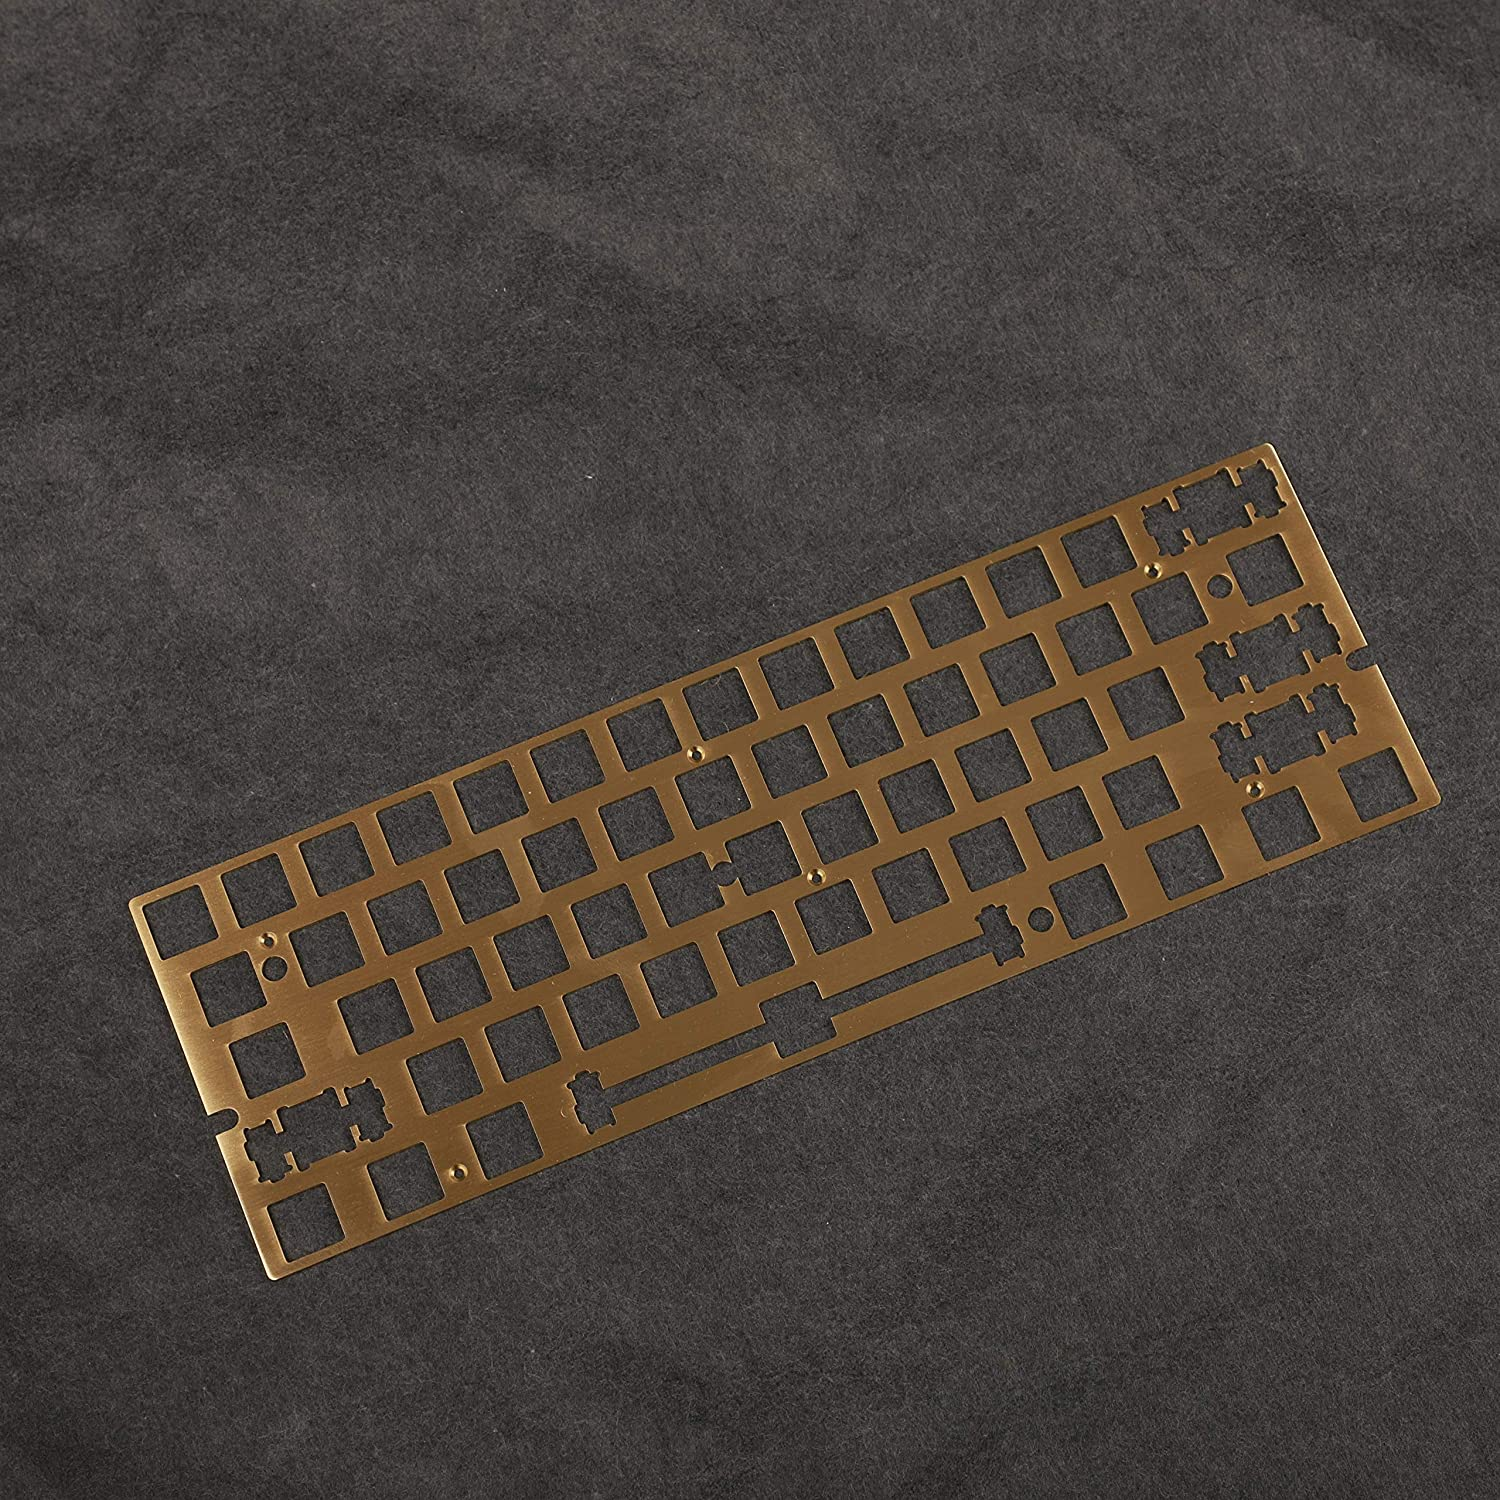 GK61x Brass Plate for 60% Keyboards